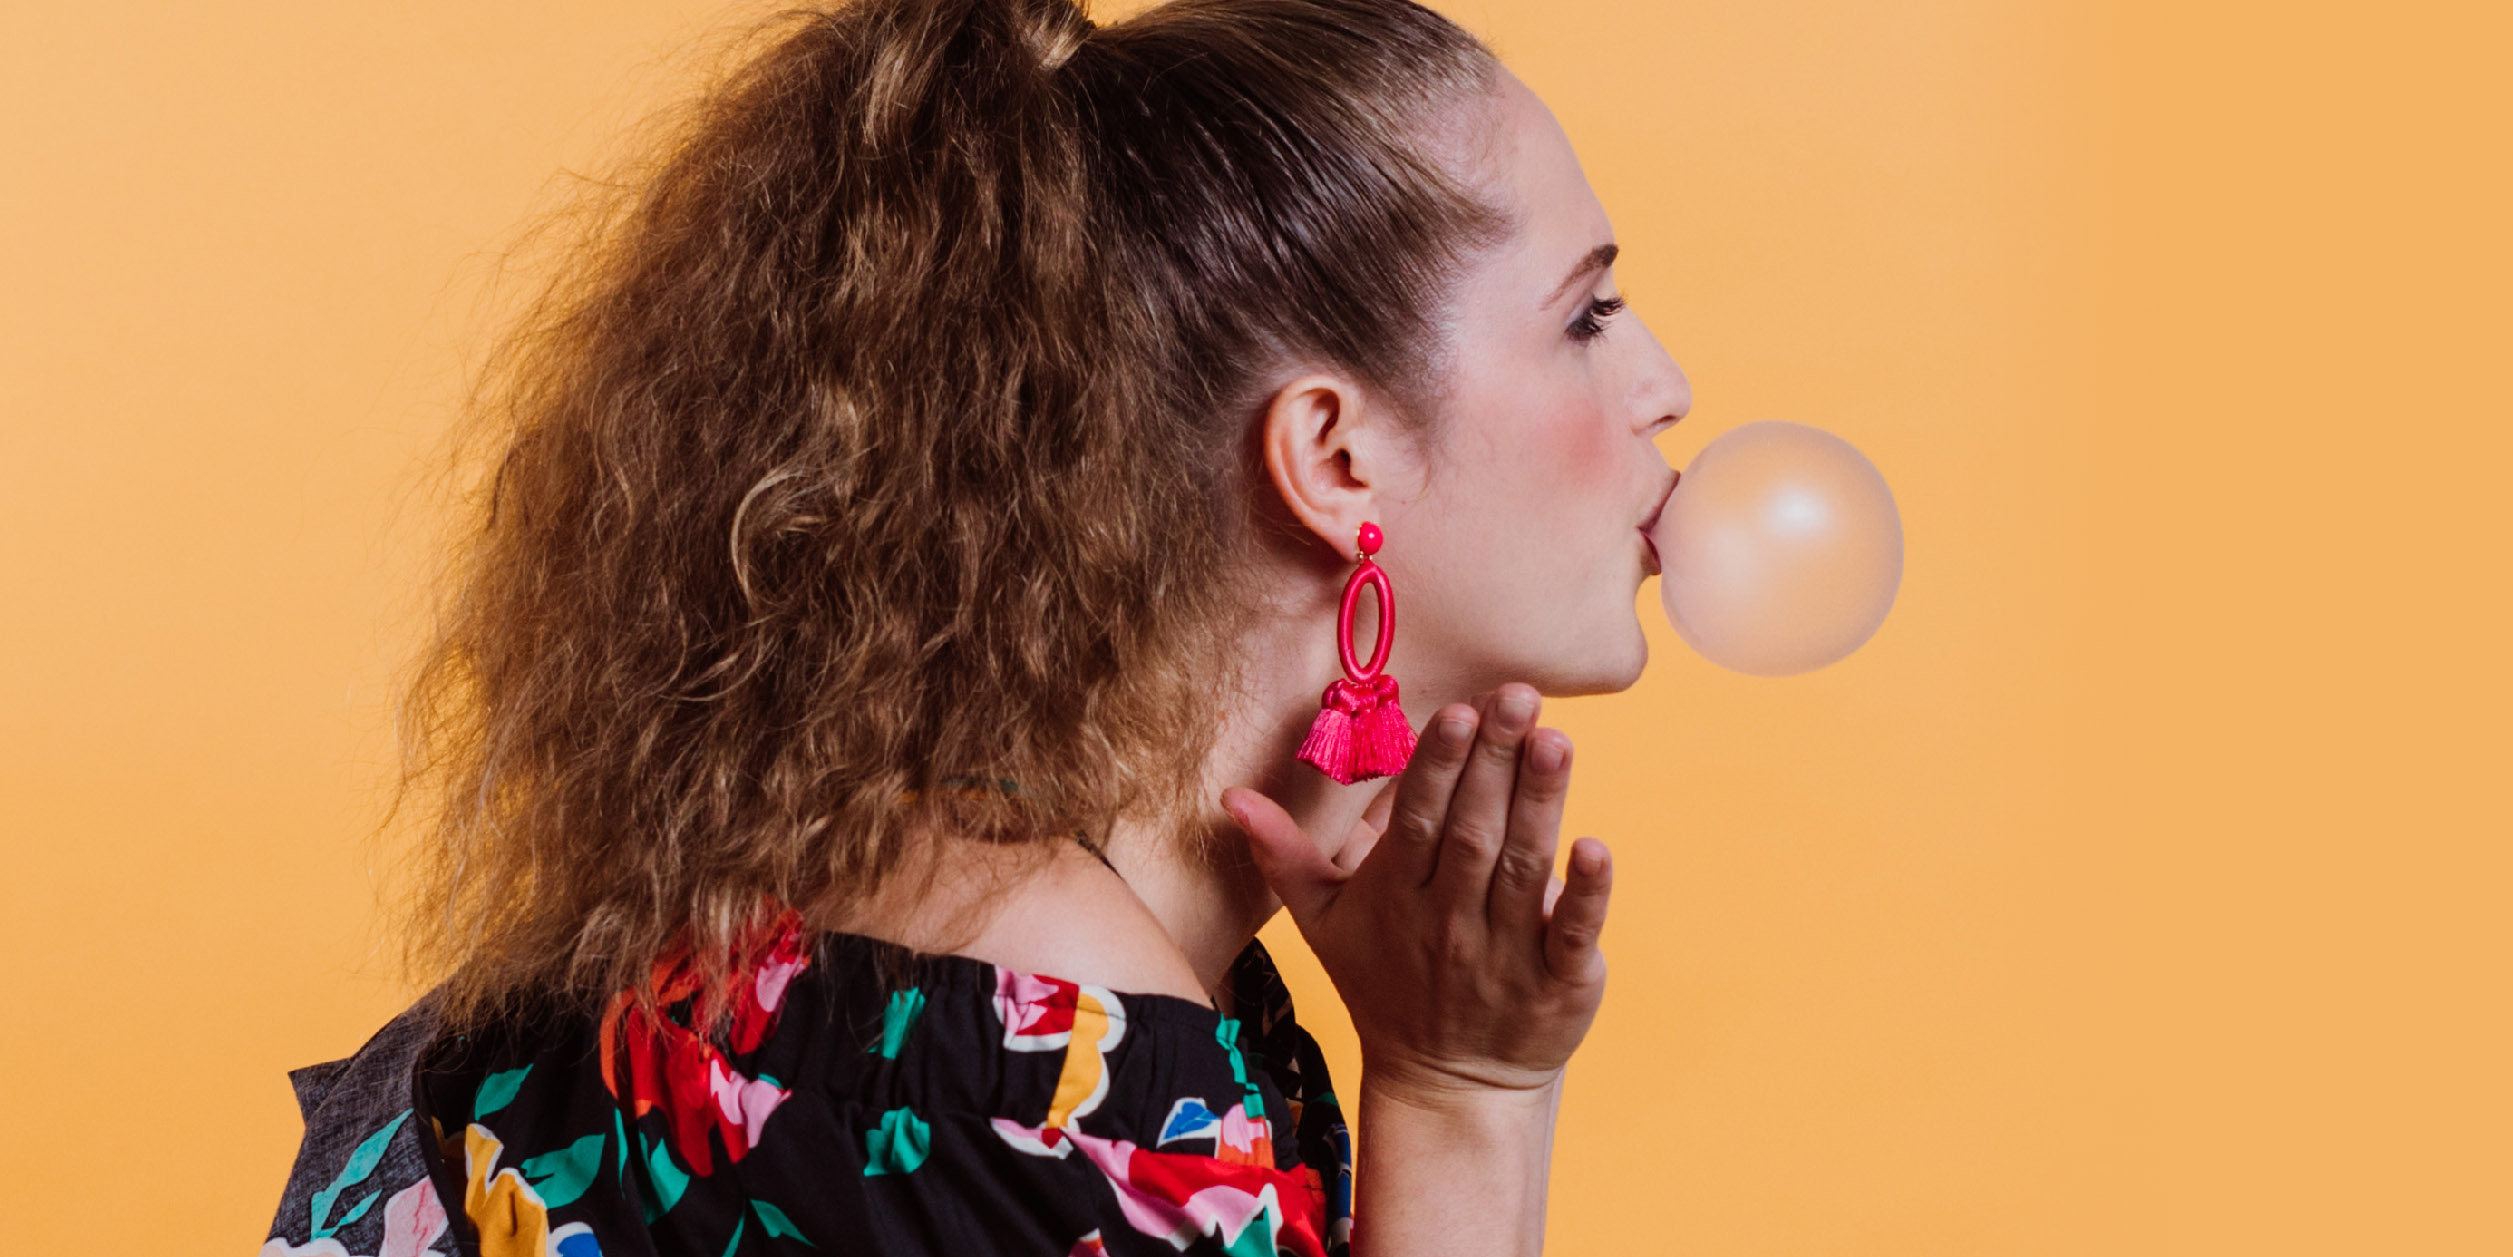 profile of millennial girl in funky clothes blowing a bubble out of gum